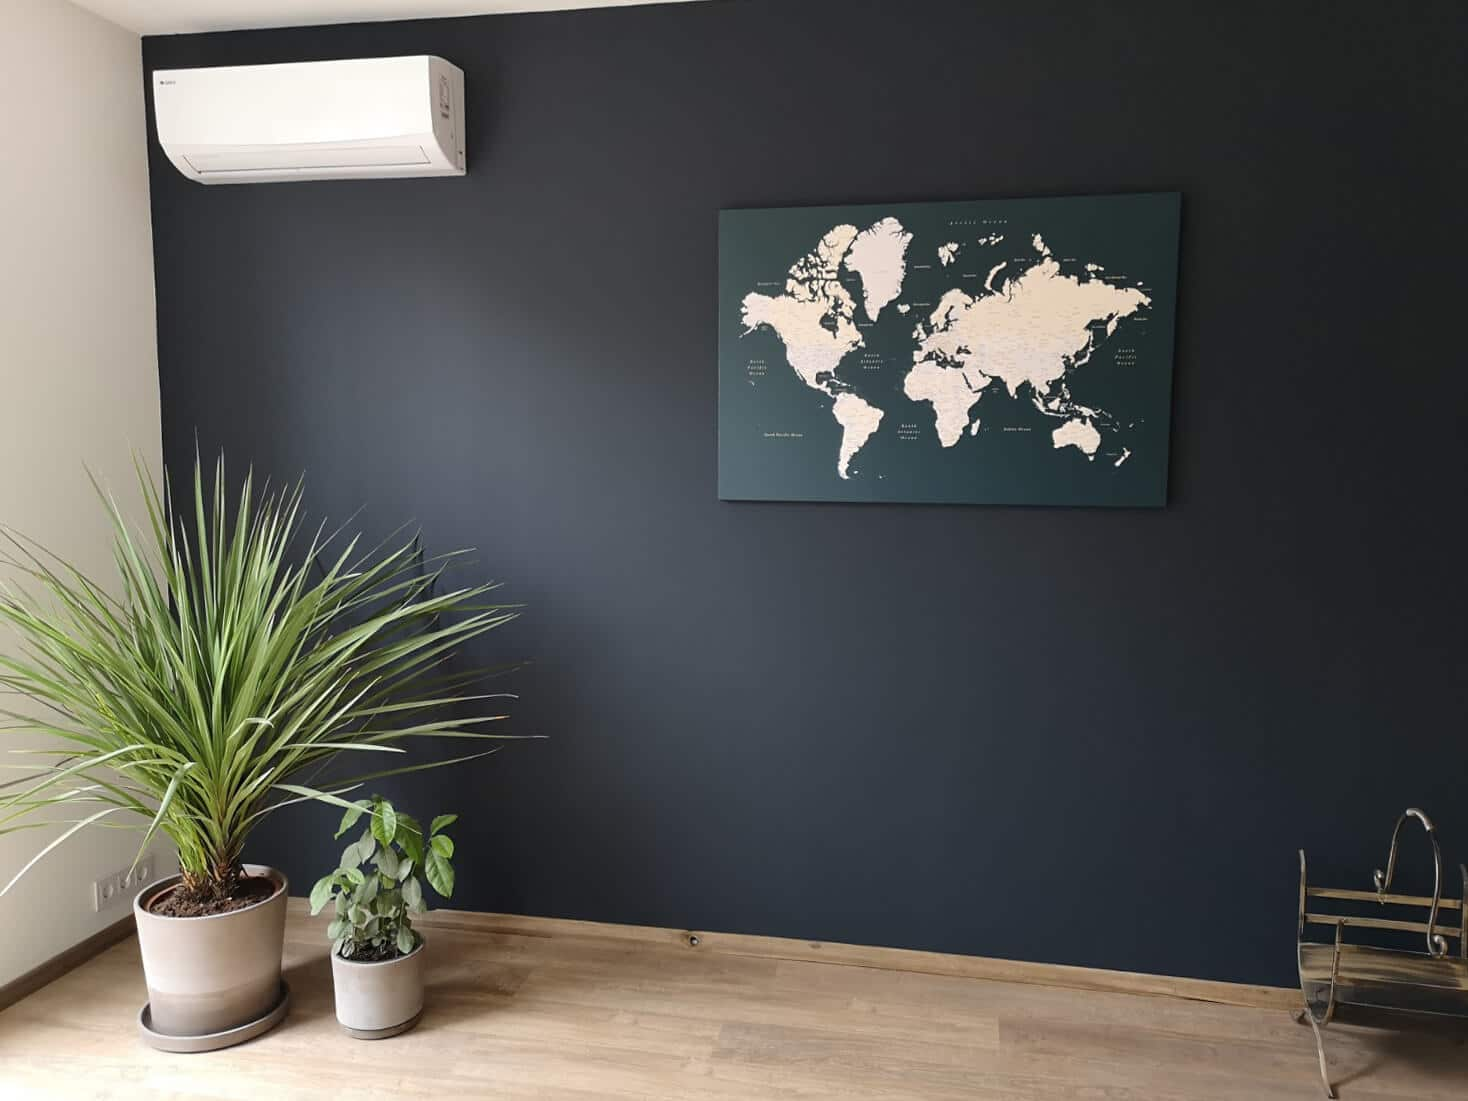 green wall art decor in living room